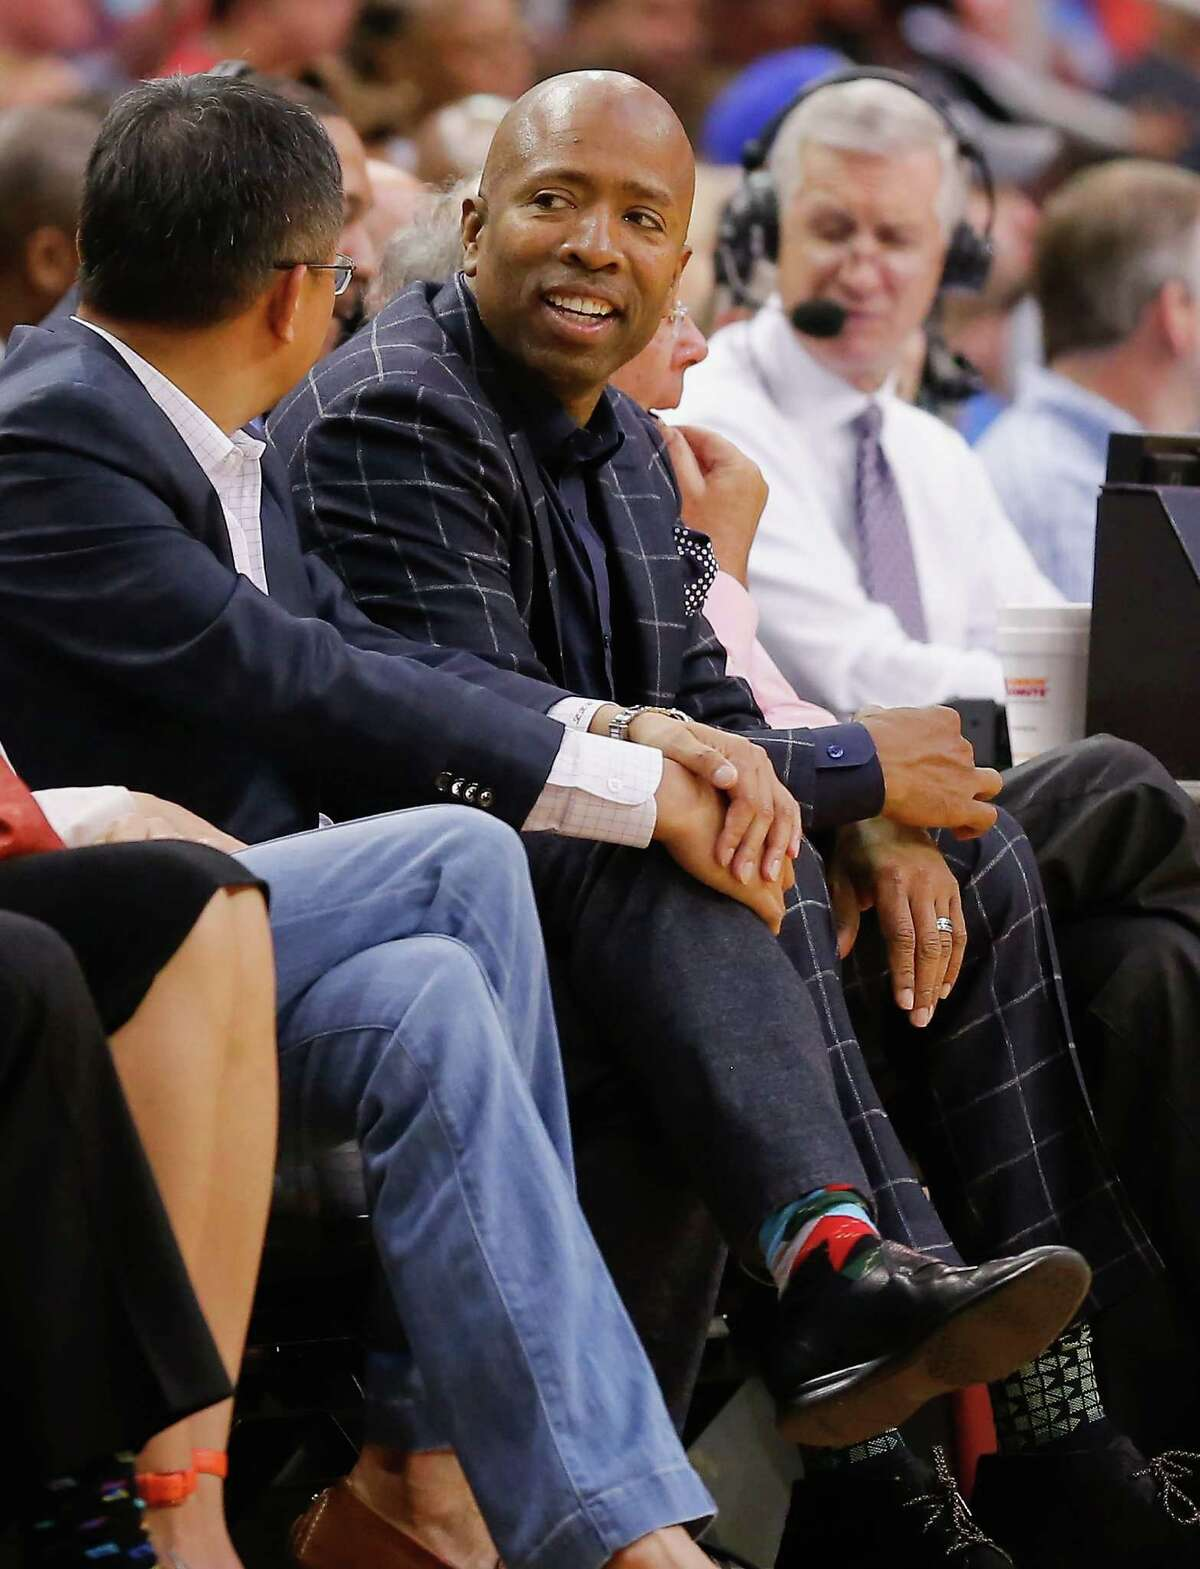 Kenny Smith interviewed for the open Houston Rockets job last week. Browse through the photos to see some of the candidates for the job.